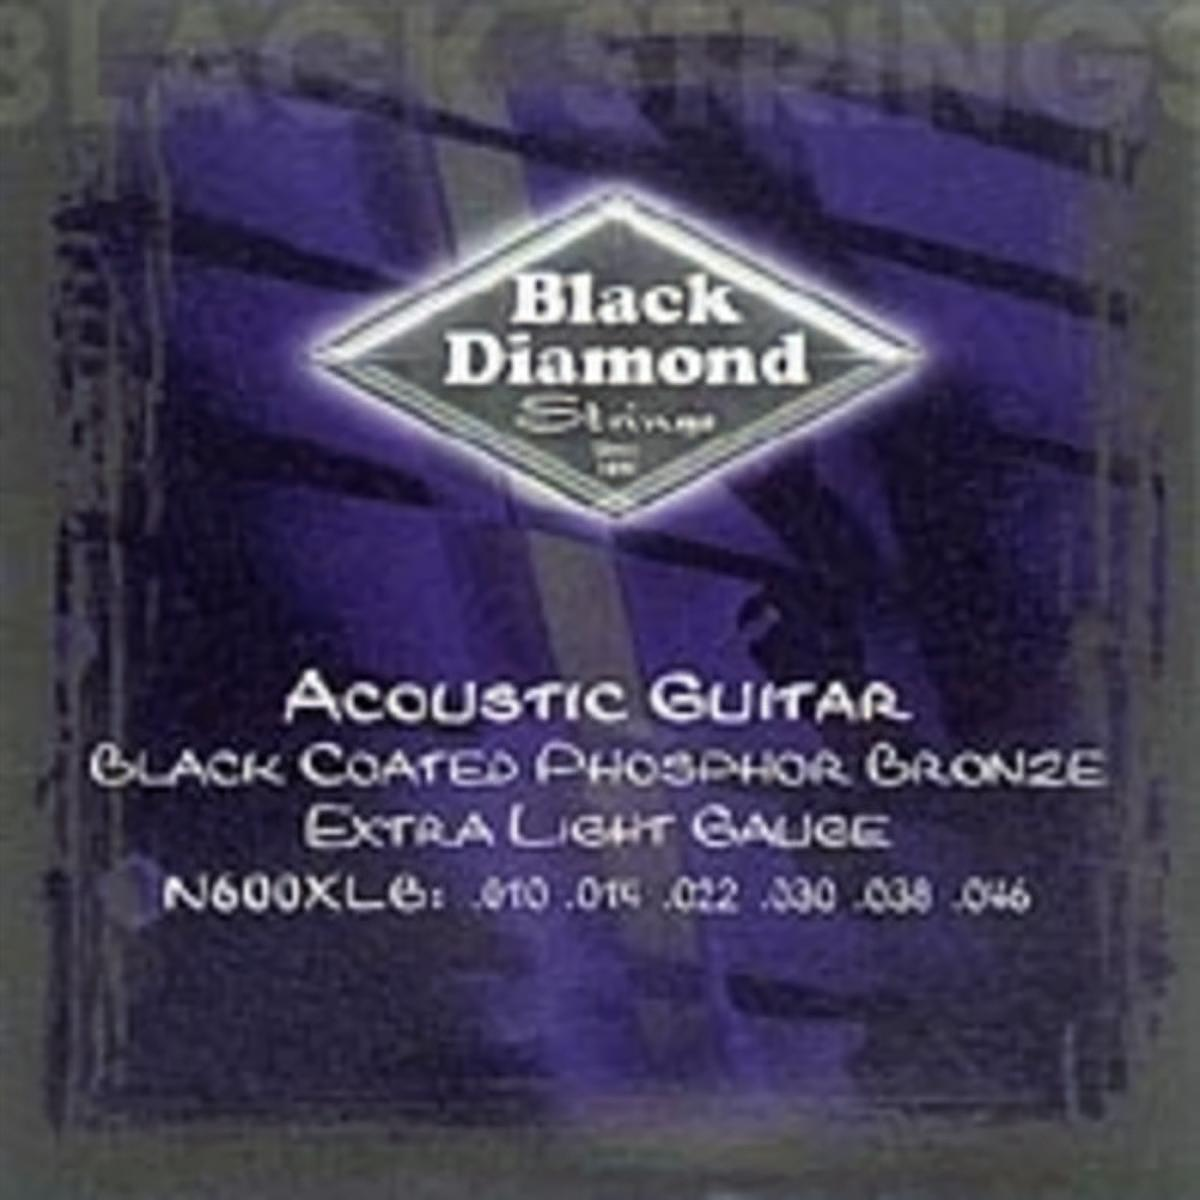 Black Diamond N600XLB